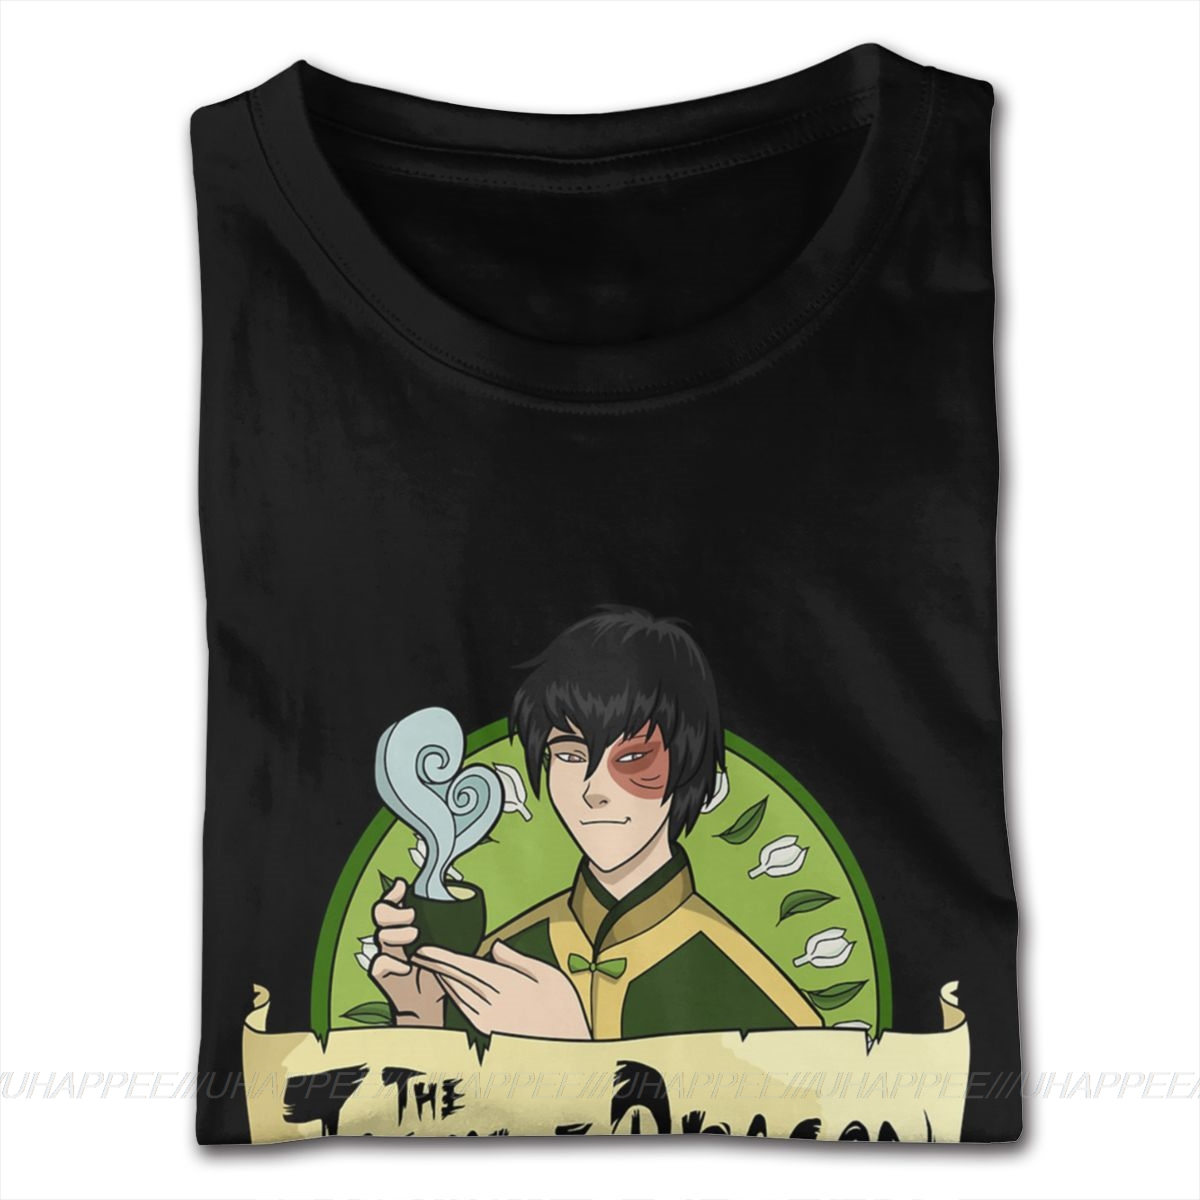 80s The Jasmine Dragon Tees Avatar The Last Airbender Tee Shirts T Shirts For Boyfriend Plus Size Black Shirt